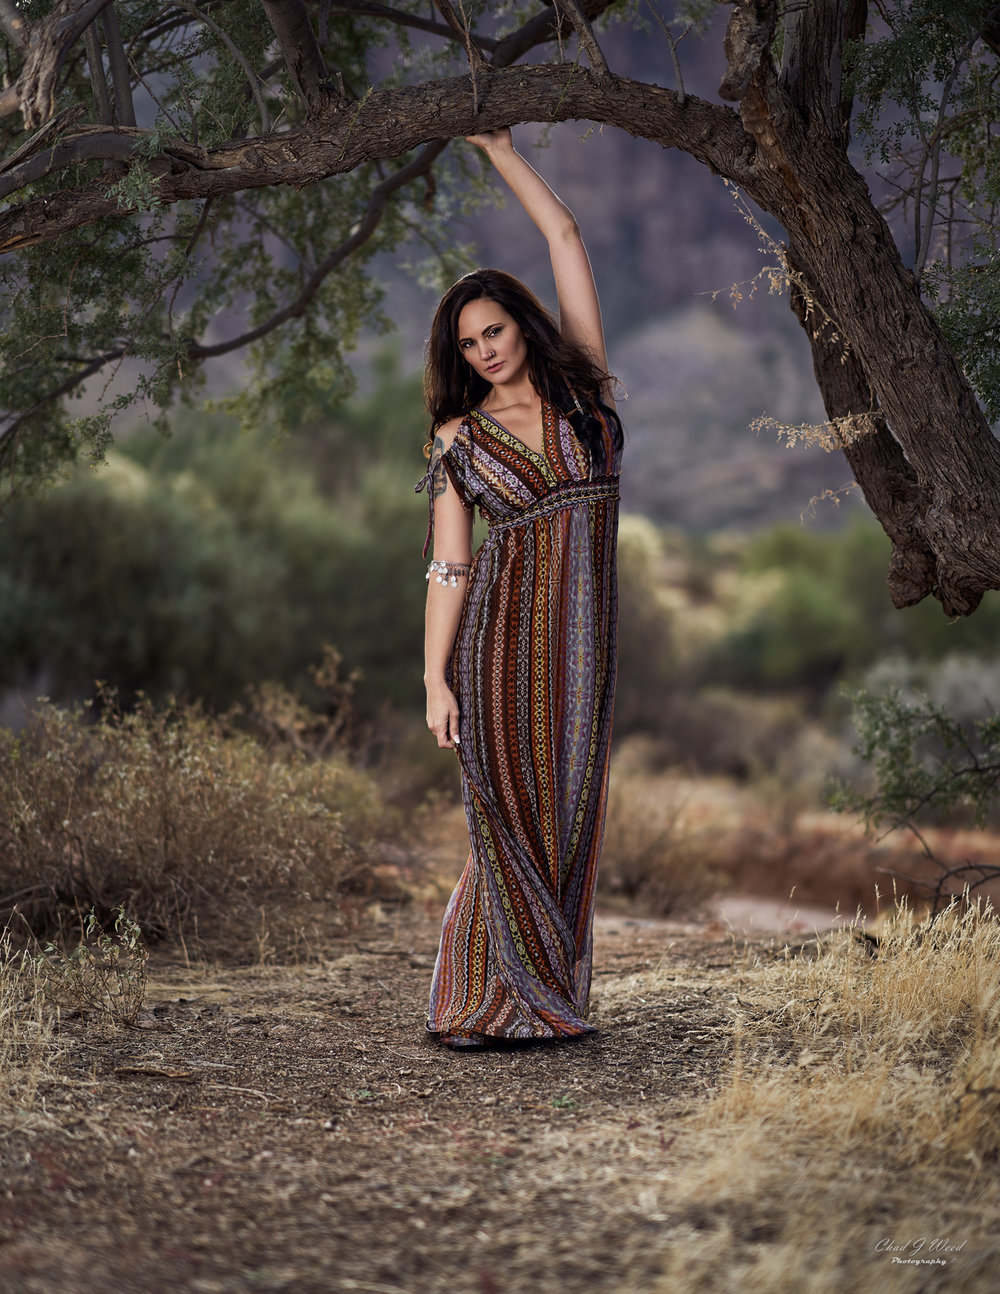 Erica Beauty Superstition Mountains by Mesa Arizona Portrait Photographer Chad Weed